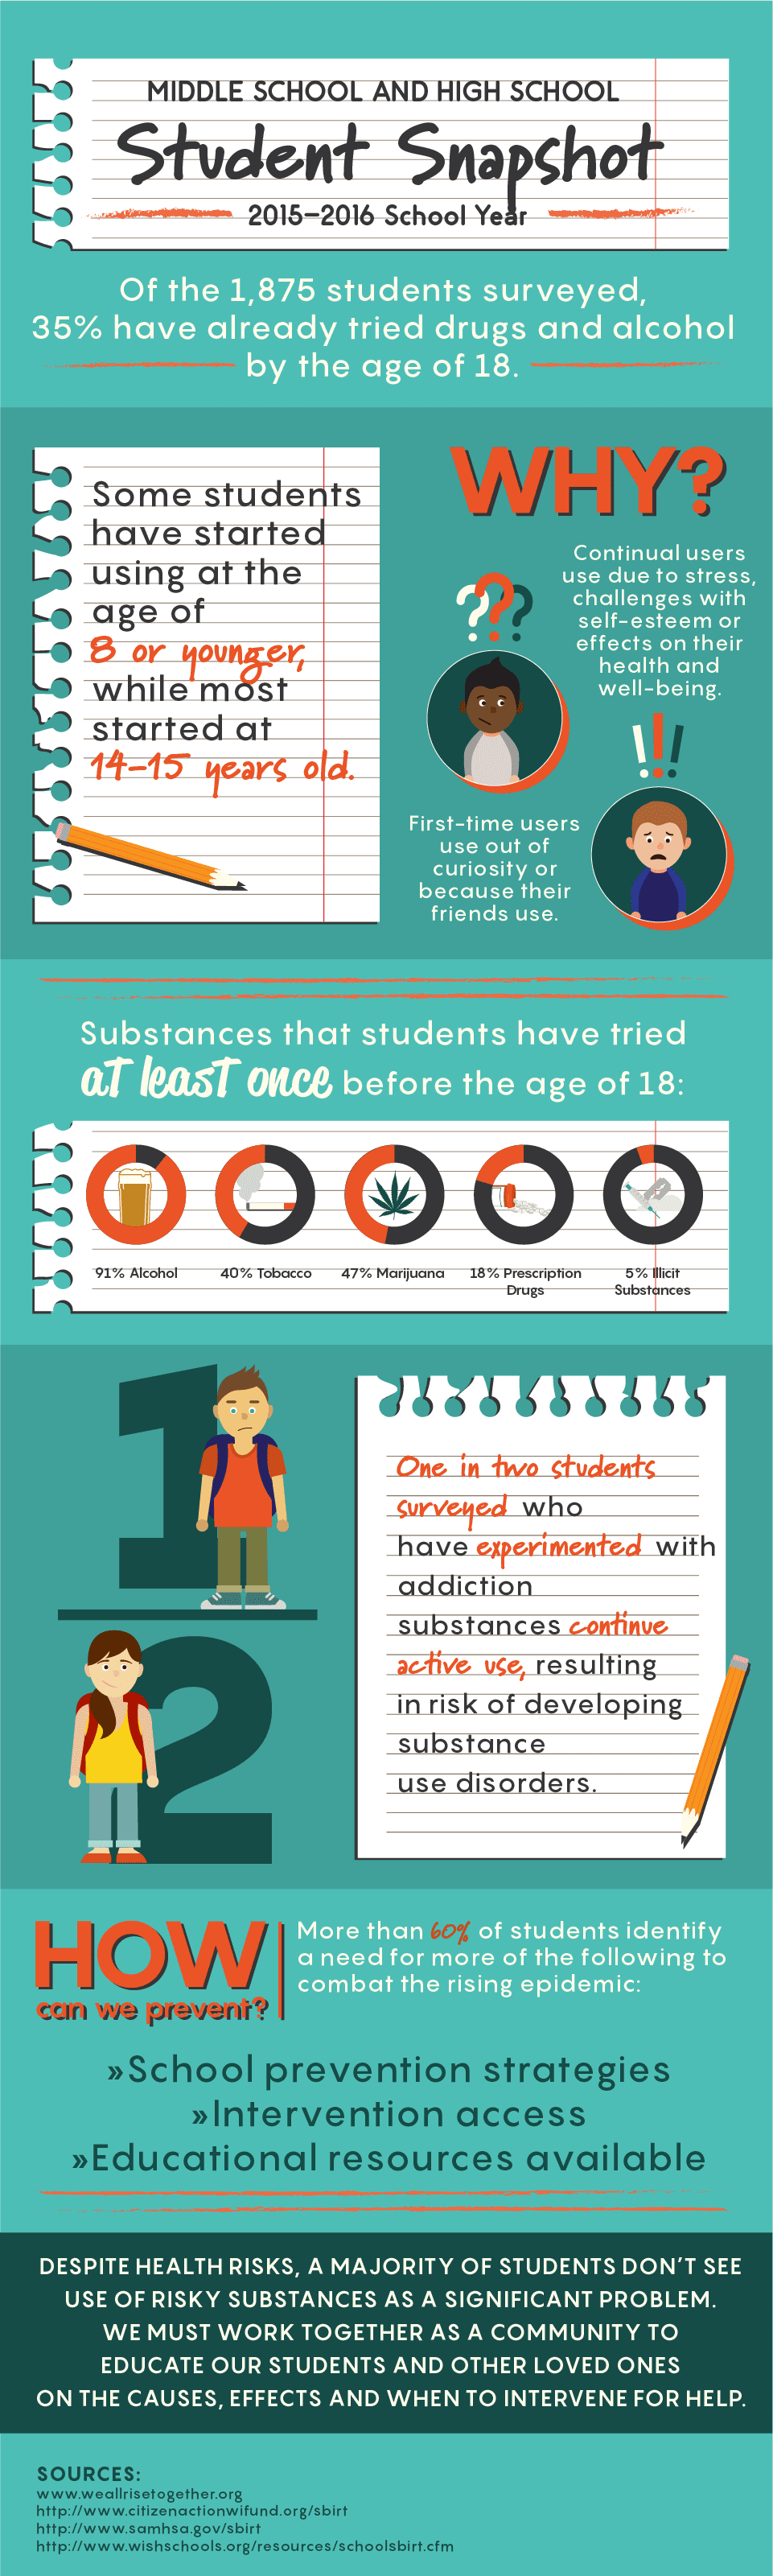 Middle school and high school students are becoming more prone to addiction and mental health. out of 1,875 students surveyed, 35% have already tried drugs and alcohol before 18 years old.